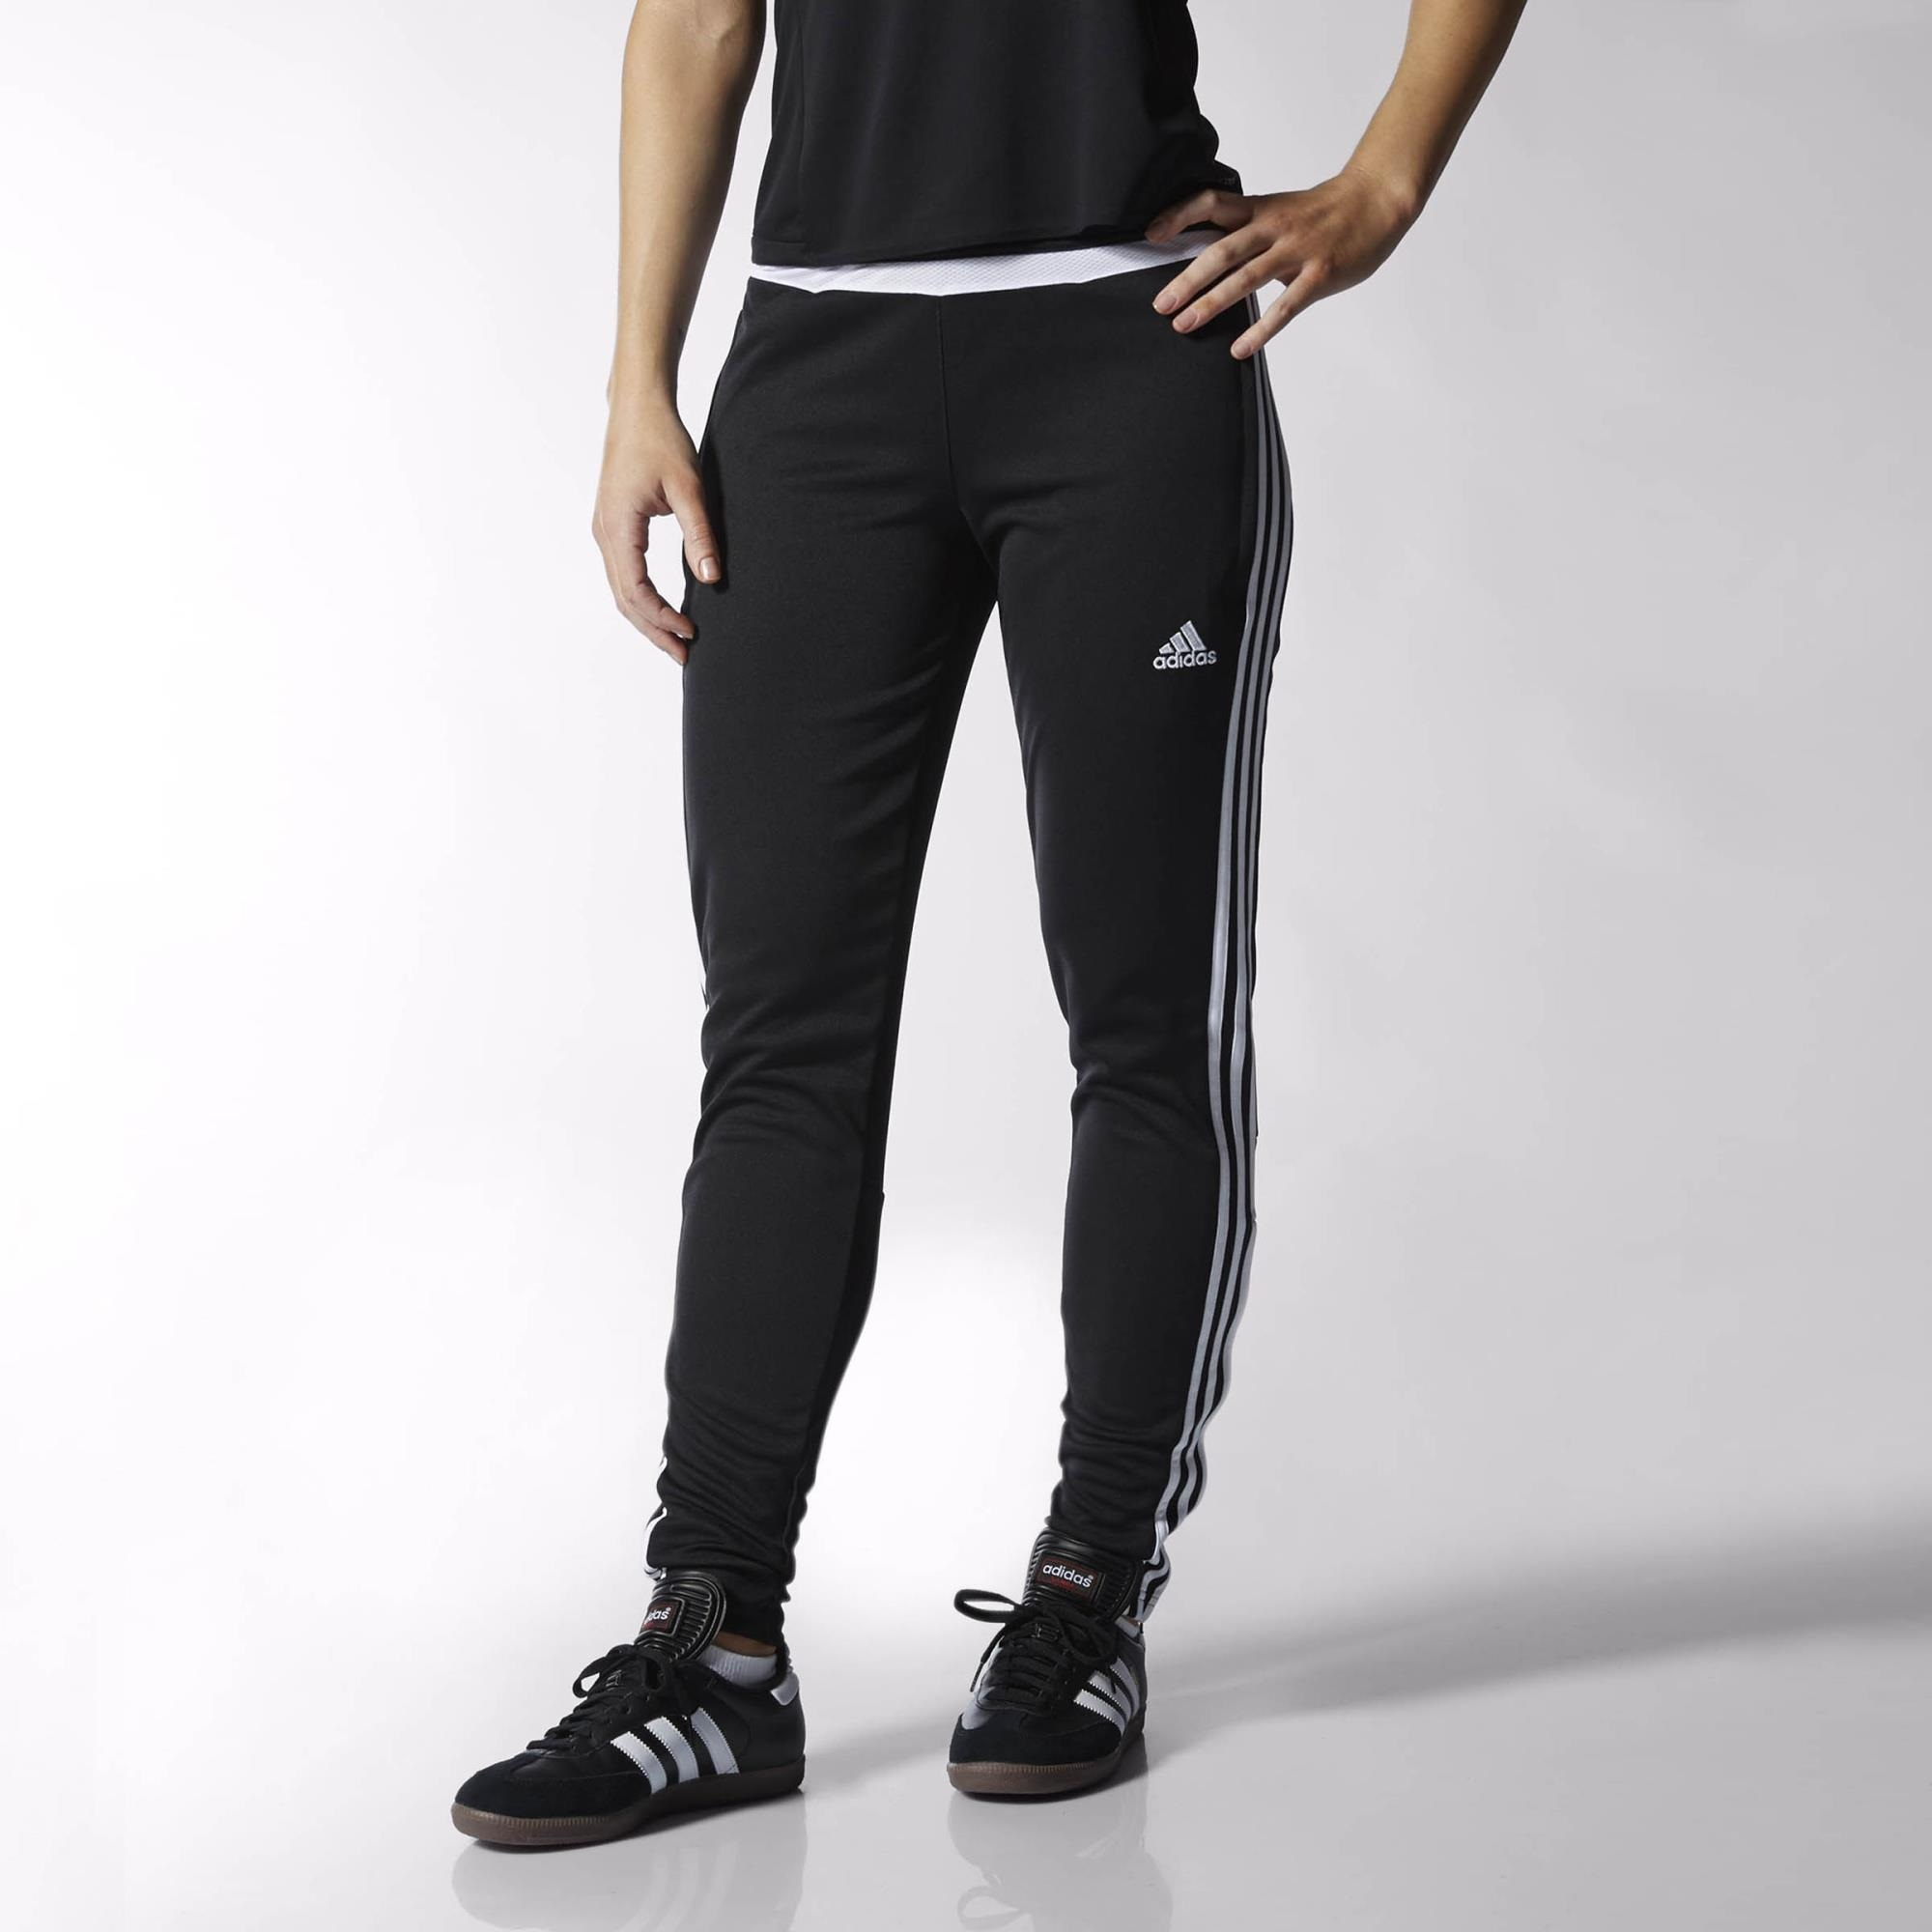 adidas Tiro 15 Training Pants Black | adidas US